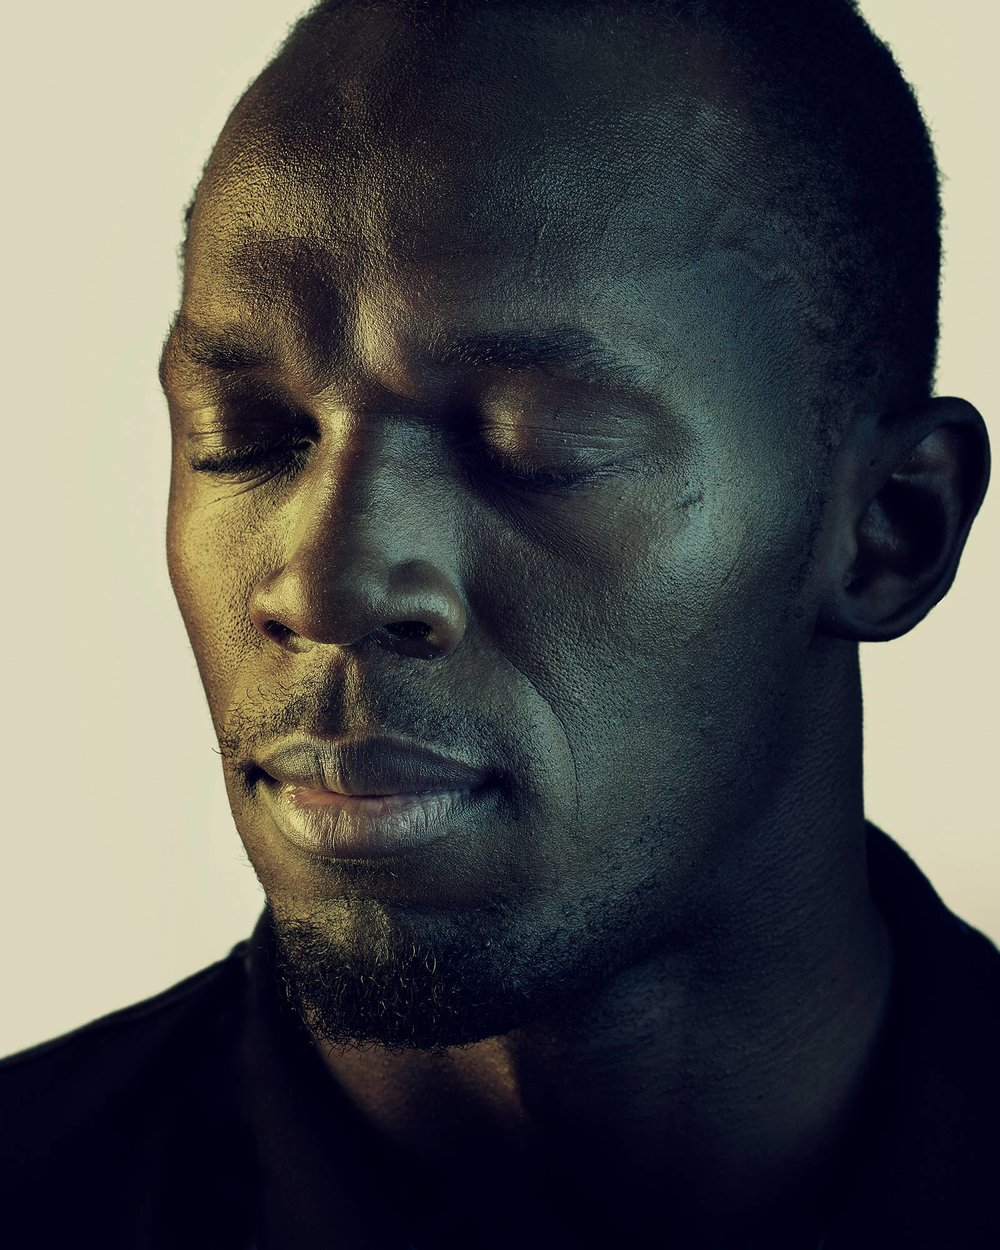 SIMON HARSENT USAIN BOLT ATHELETE OUTTAKE FROM GIBSON